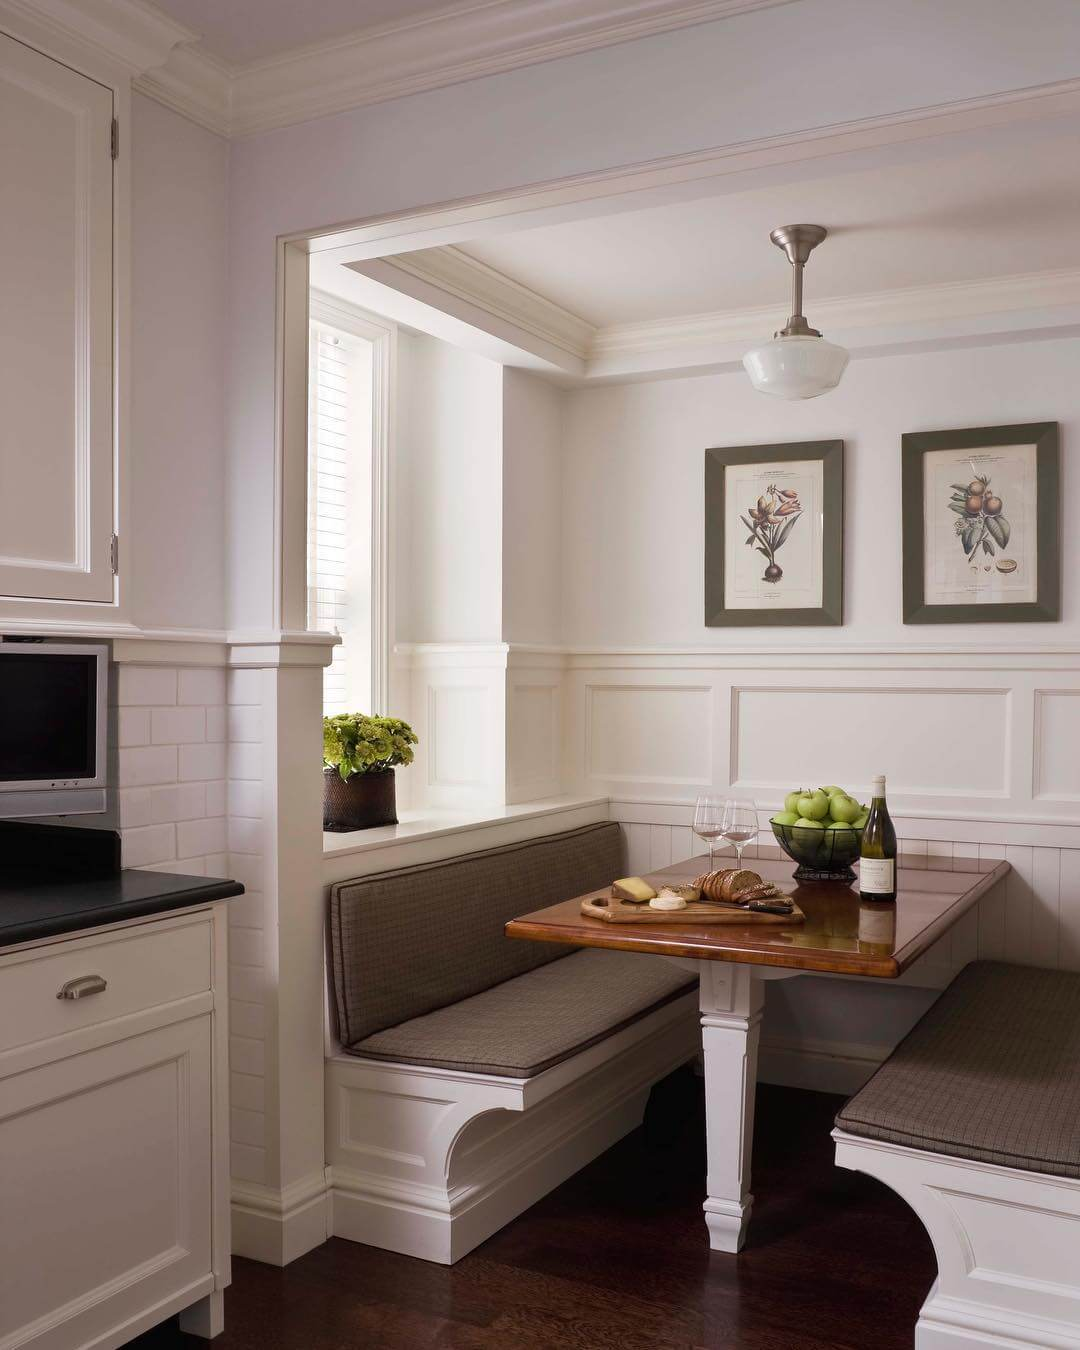 SMALL HOUSE KITCHEN ADDITIONS